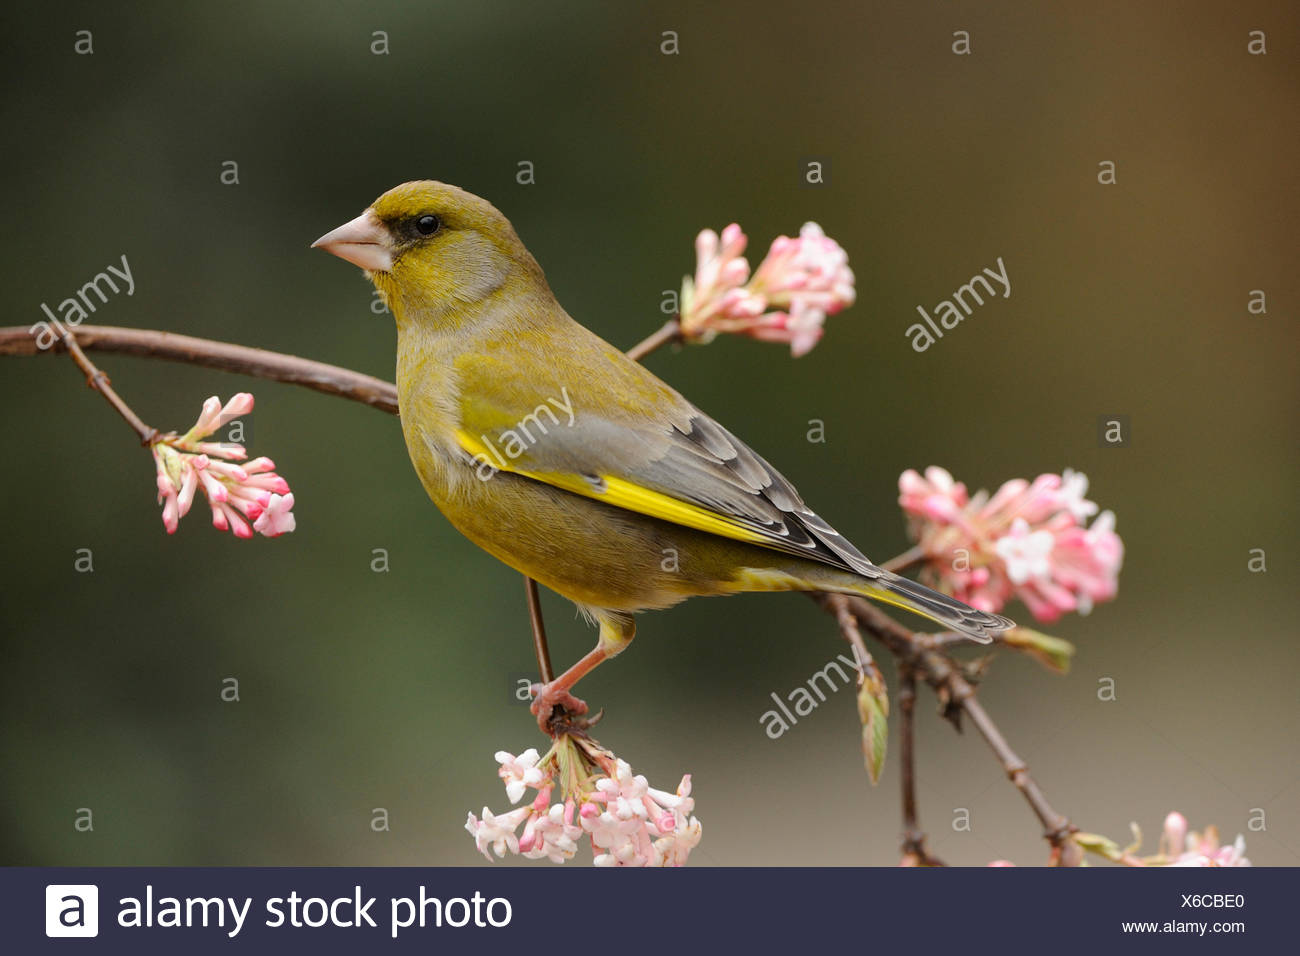 Male Greenfinch perched on branch with pink flowers - Stock Image